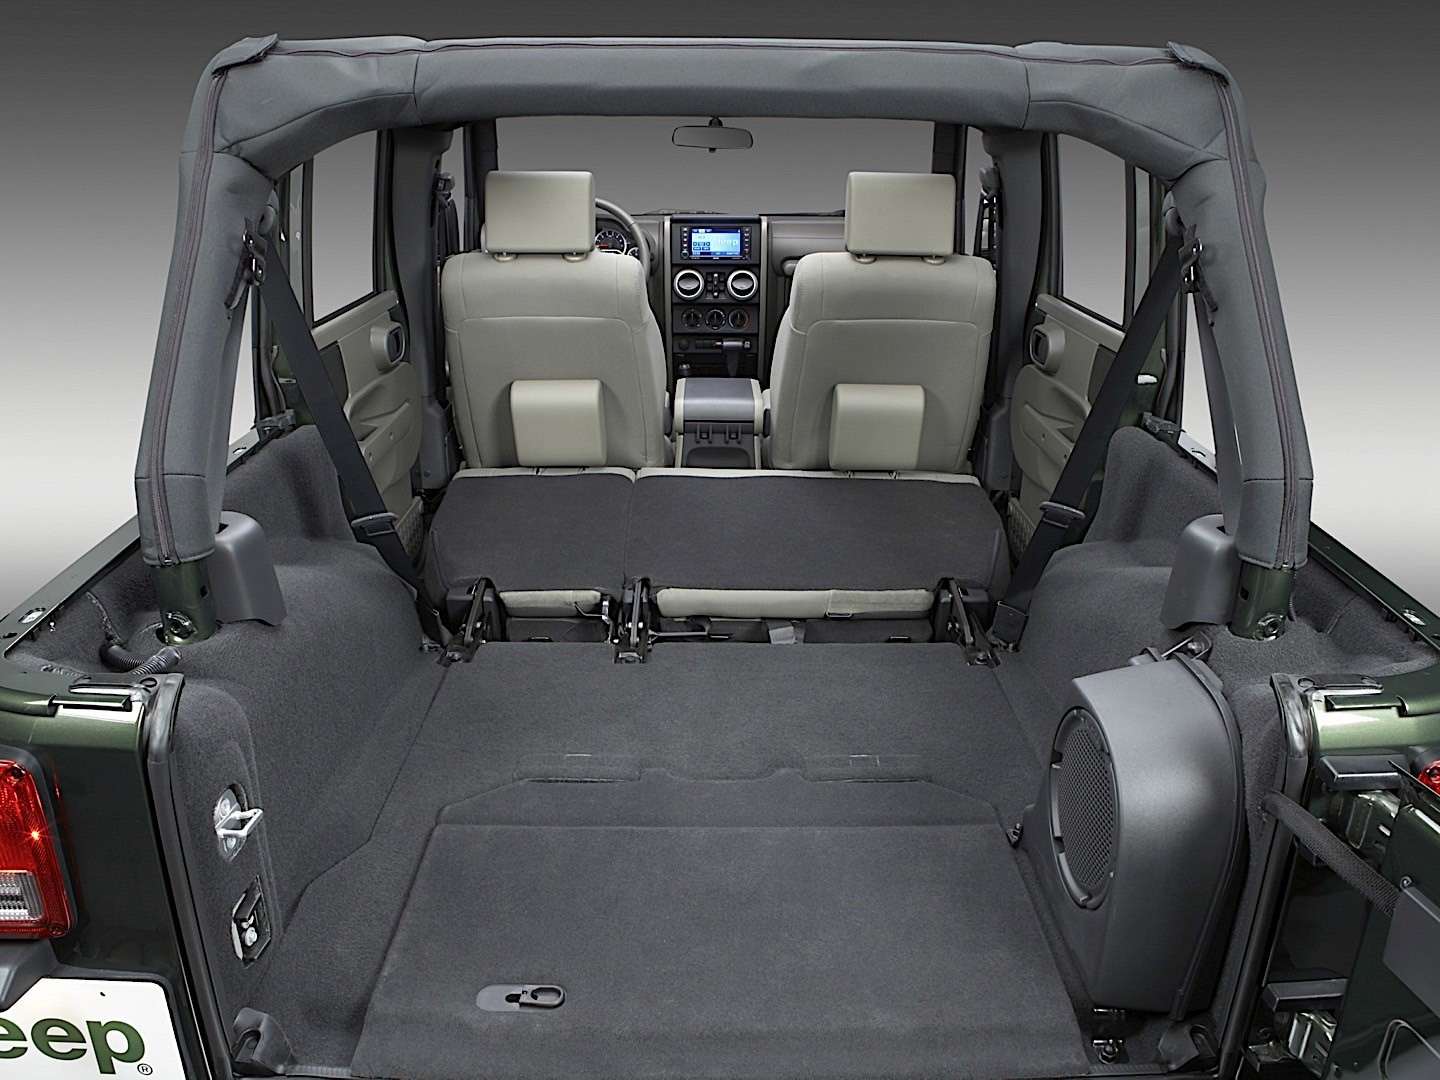 interior dimensions of jeep wrangler unlimited. Black Bedroom Furniture Sets. Home Design Ideas